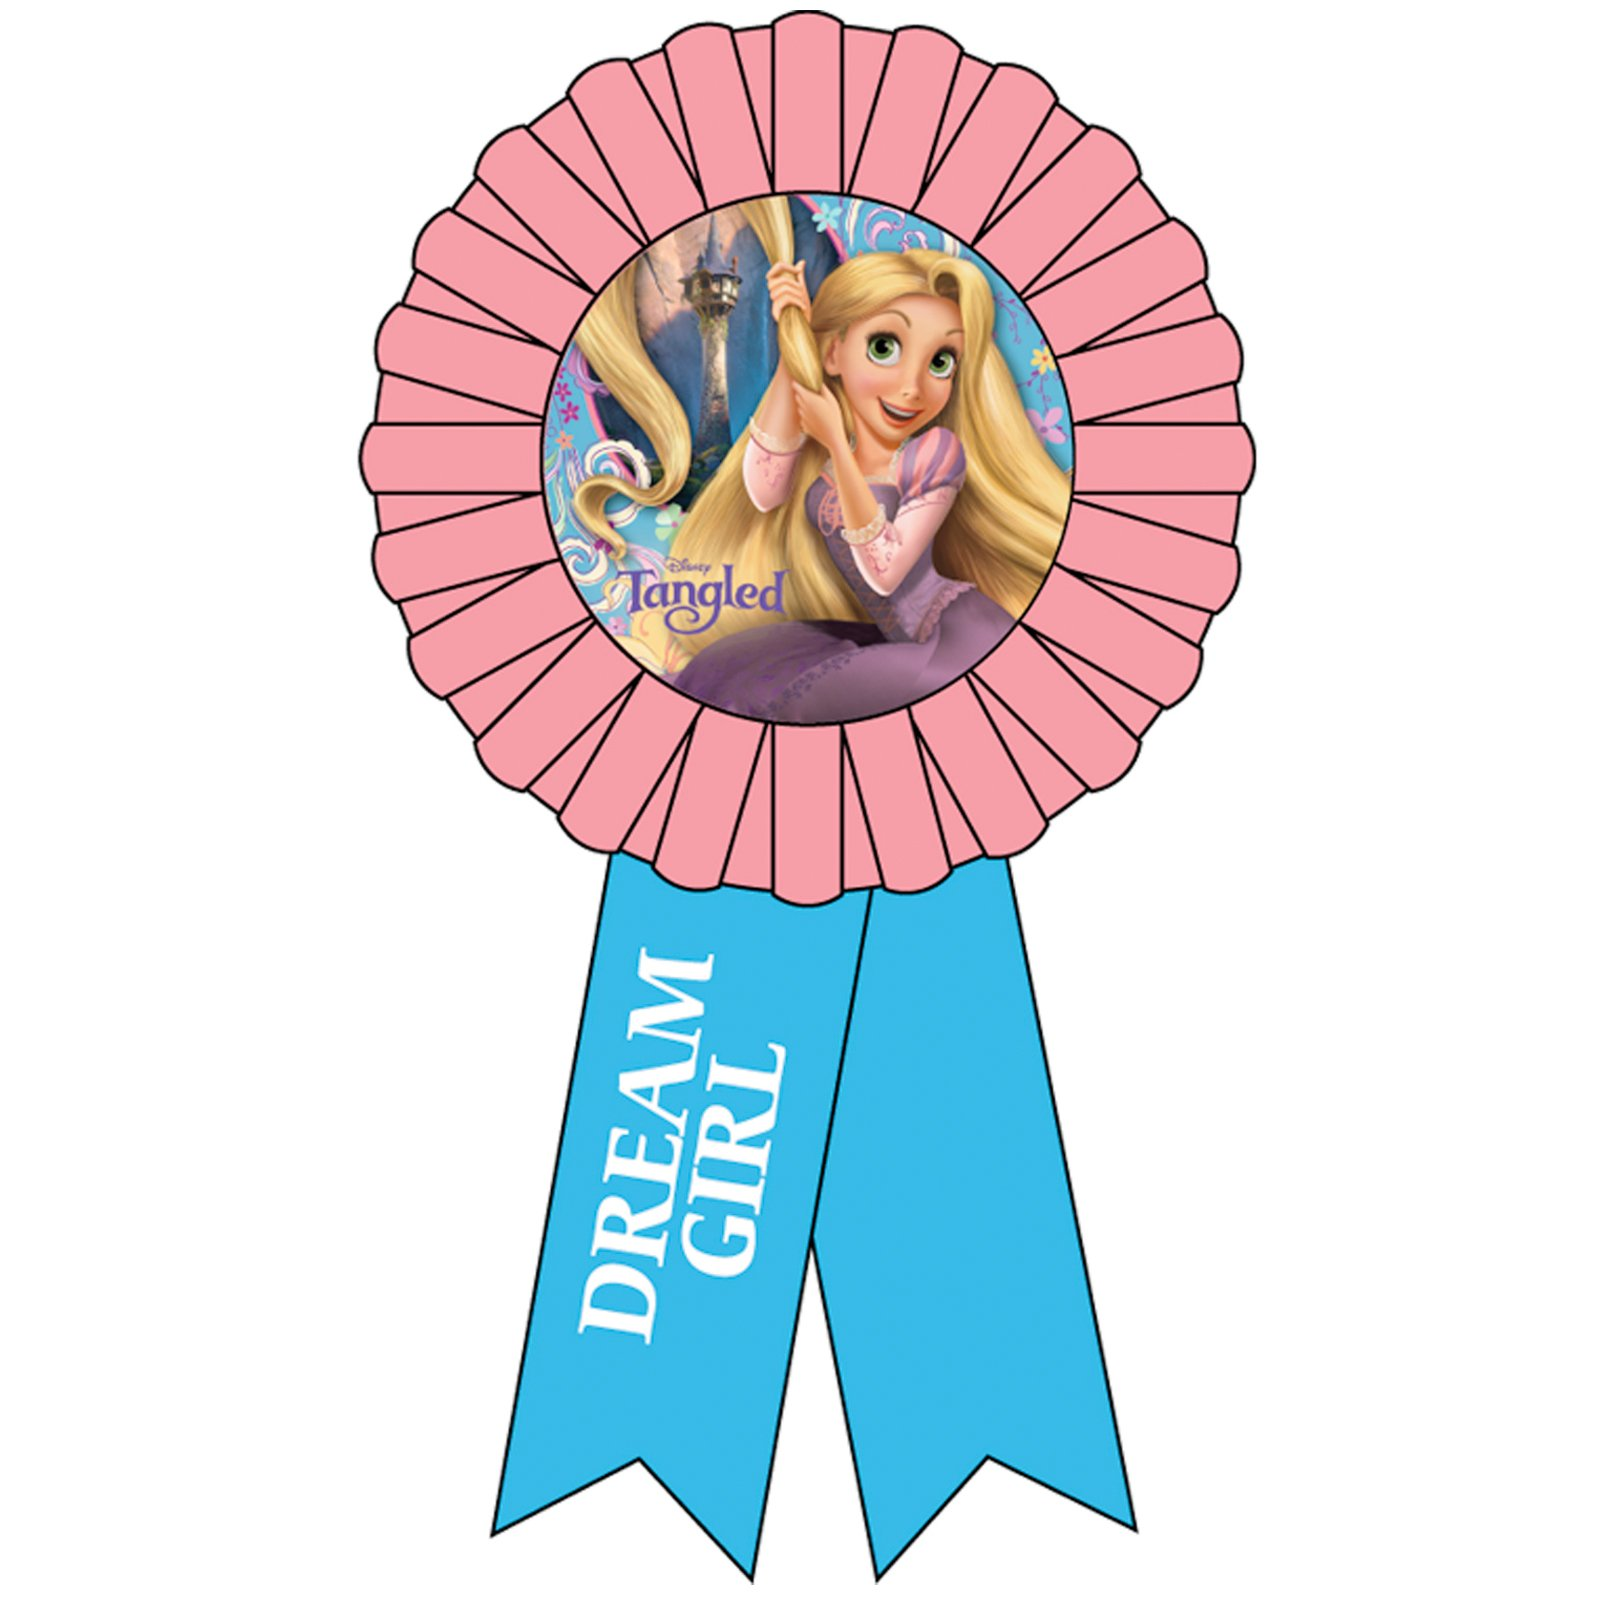 Tangled Award Ribbon